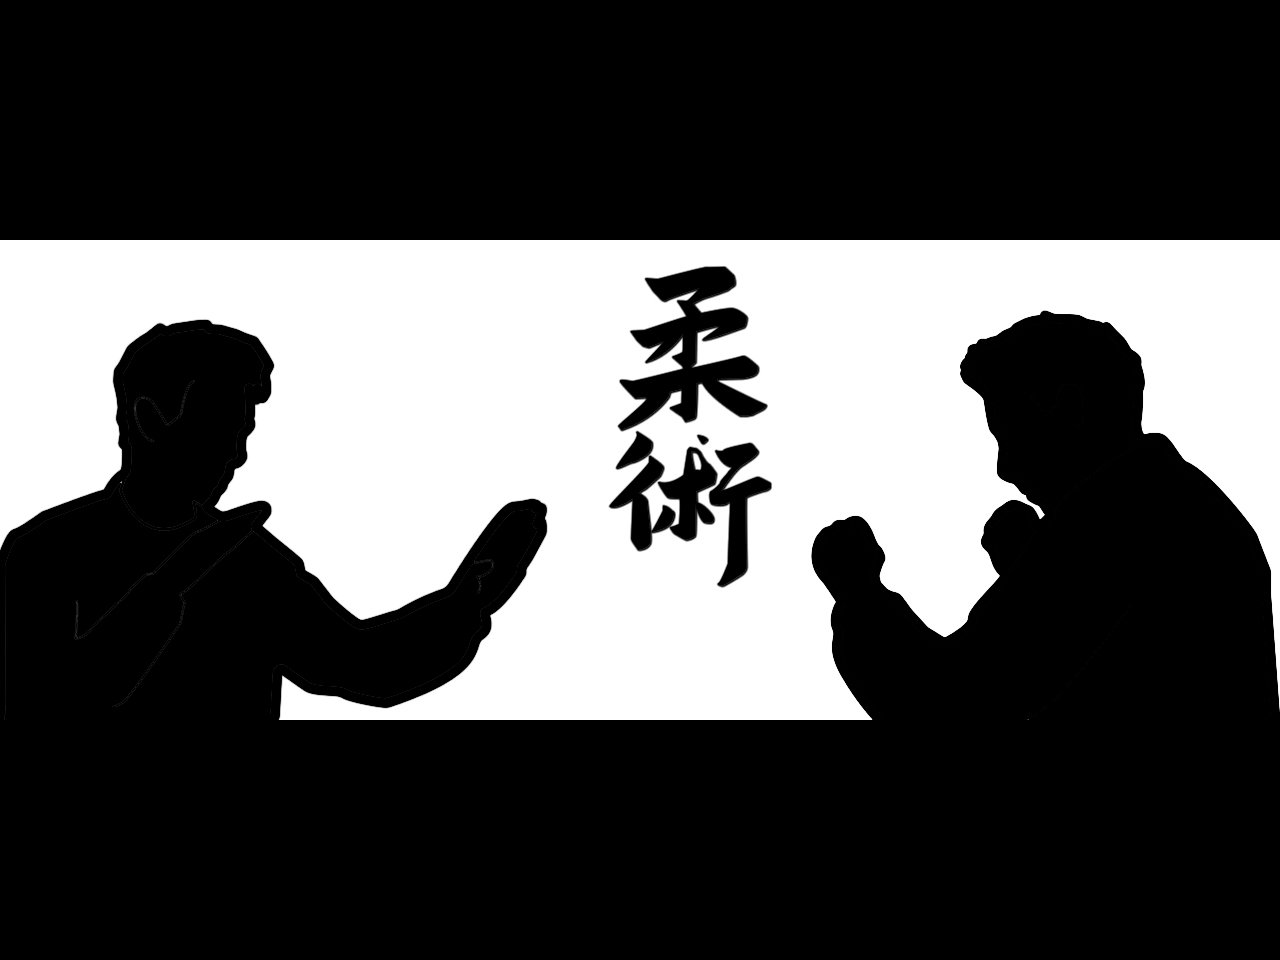 Best 63 Jeet Kune Do Wallpaper on HipWallpaper Jeet Kune Do 1280x960